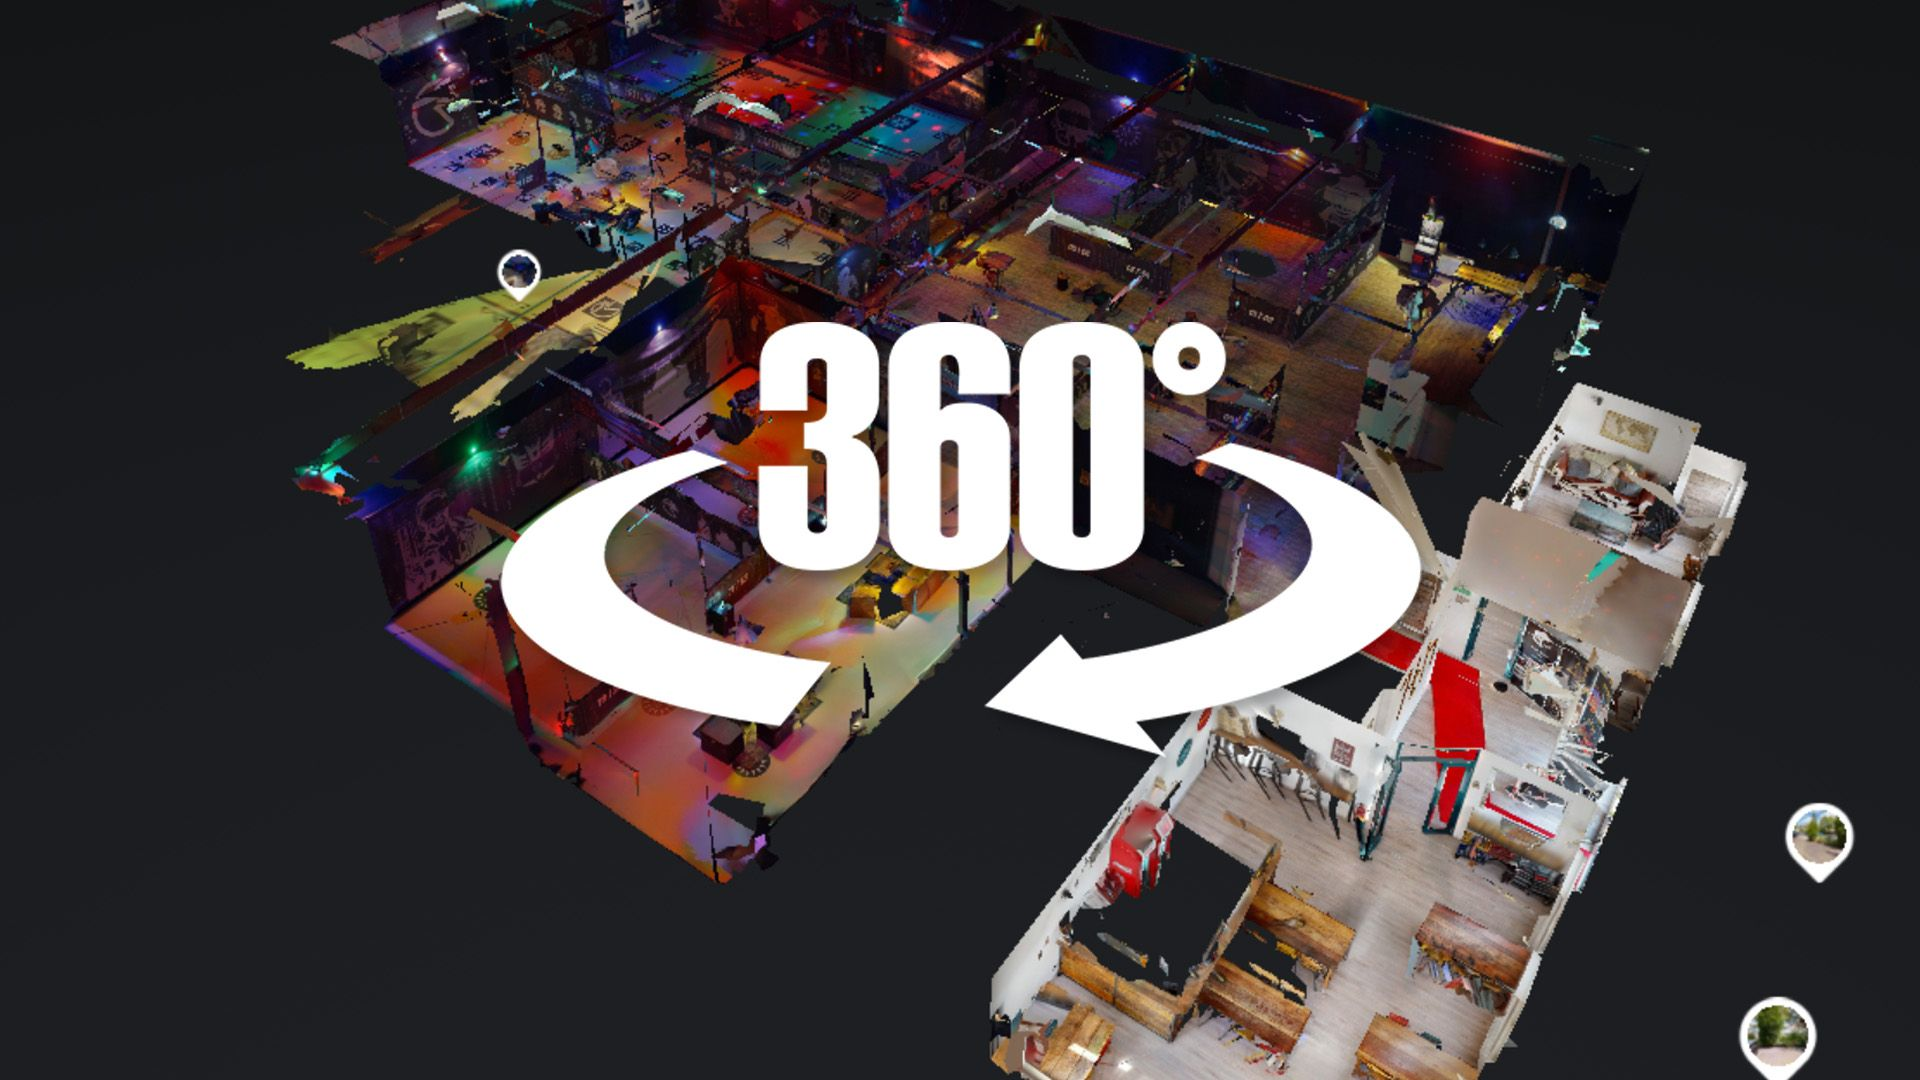 7th Space Thumb 360 VR Icon Langenfeld